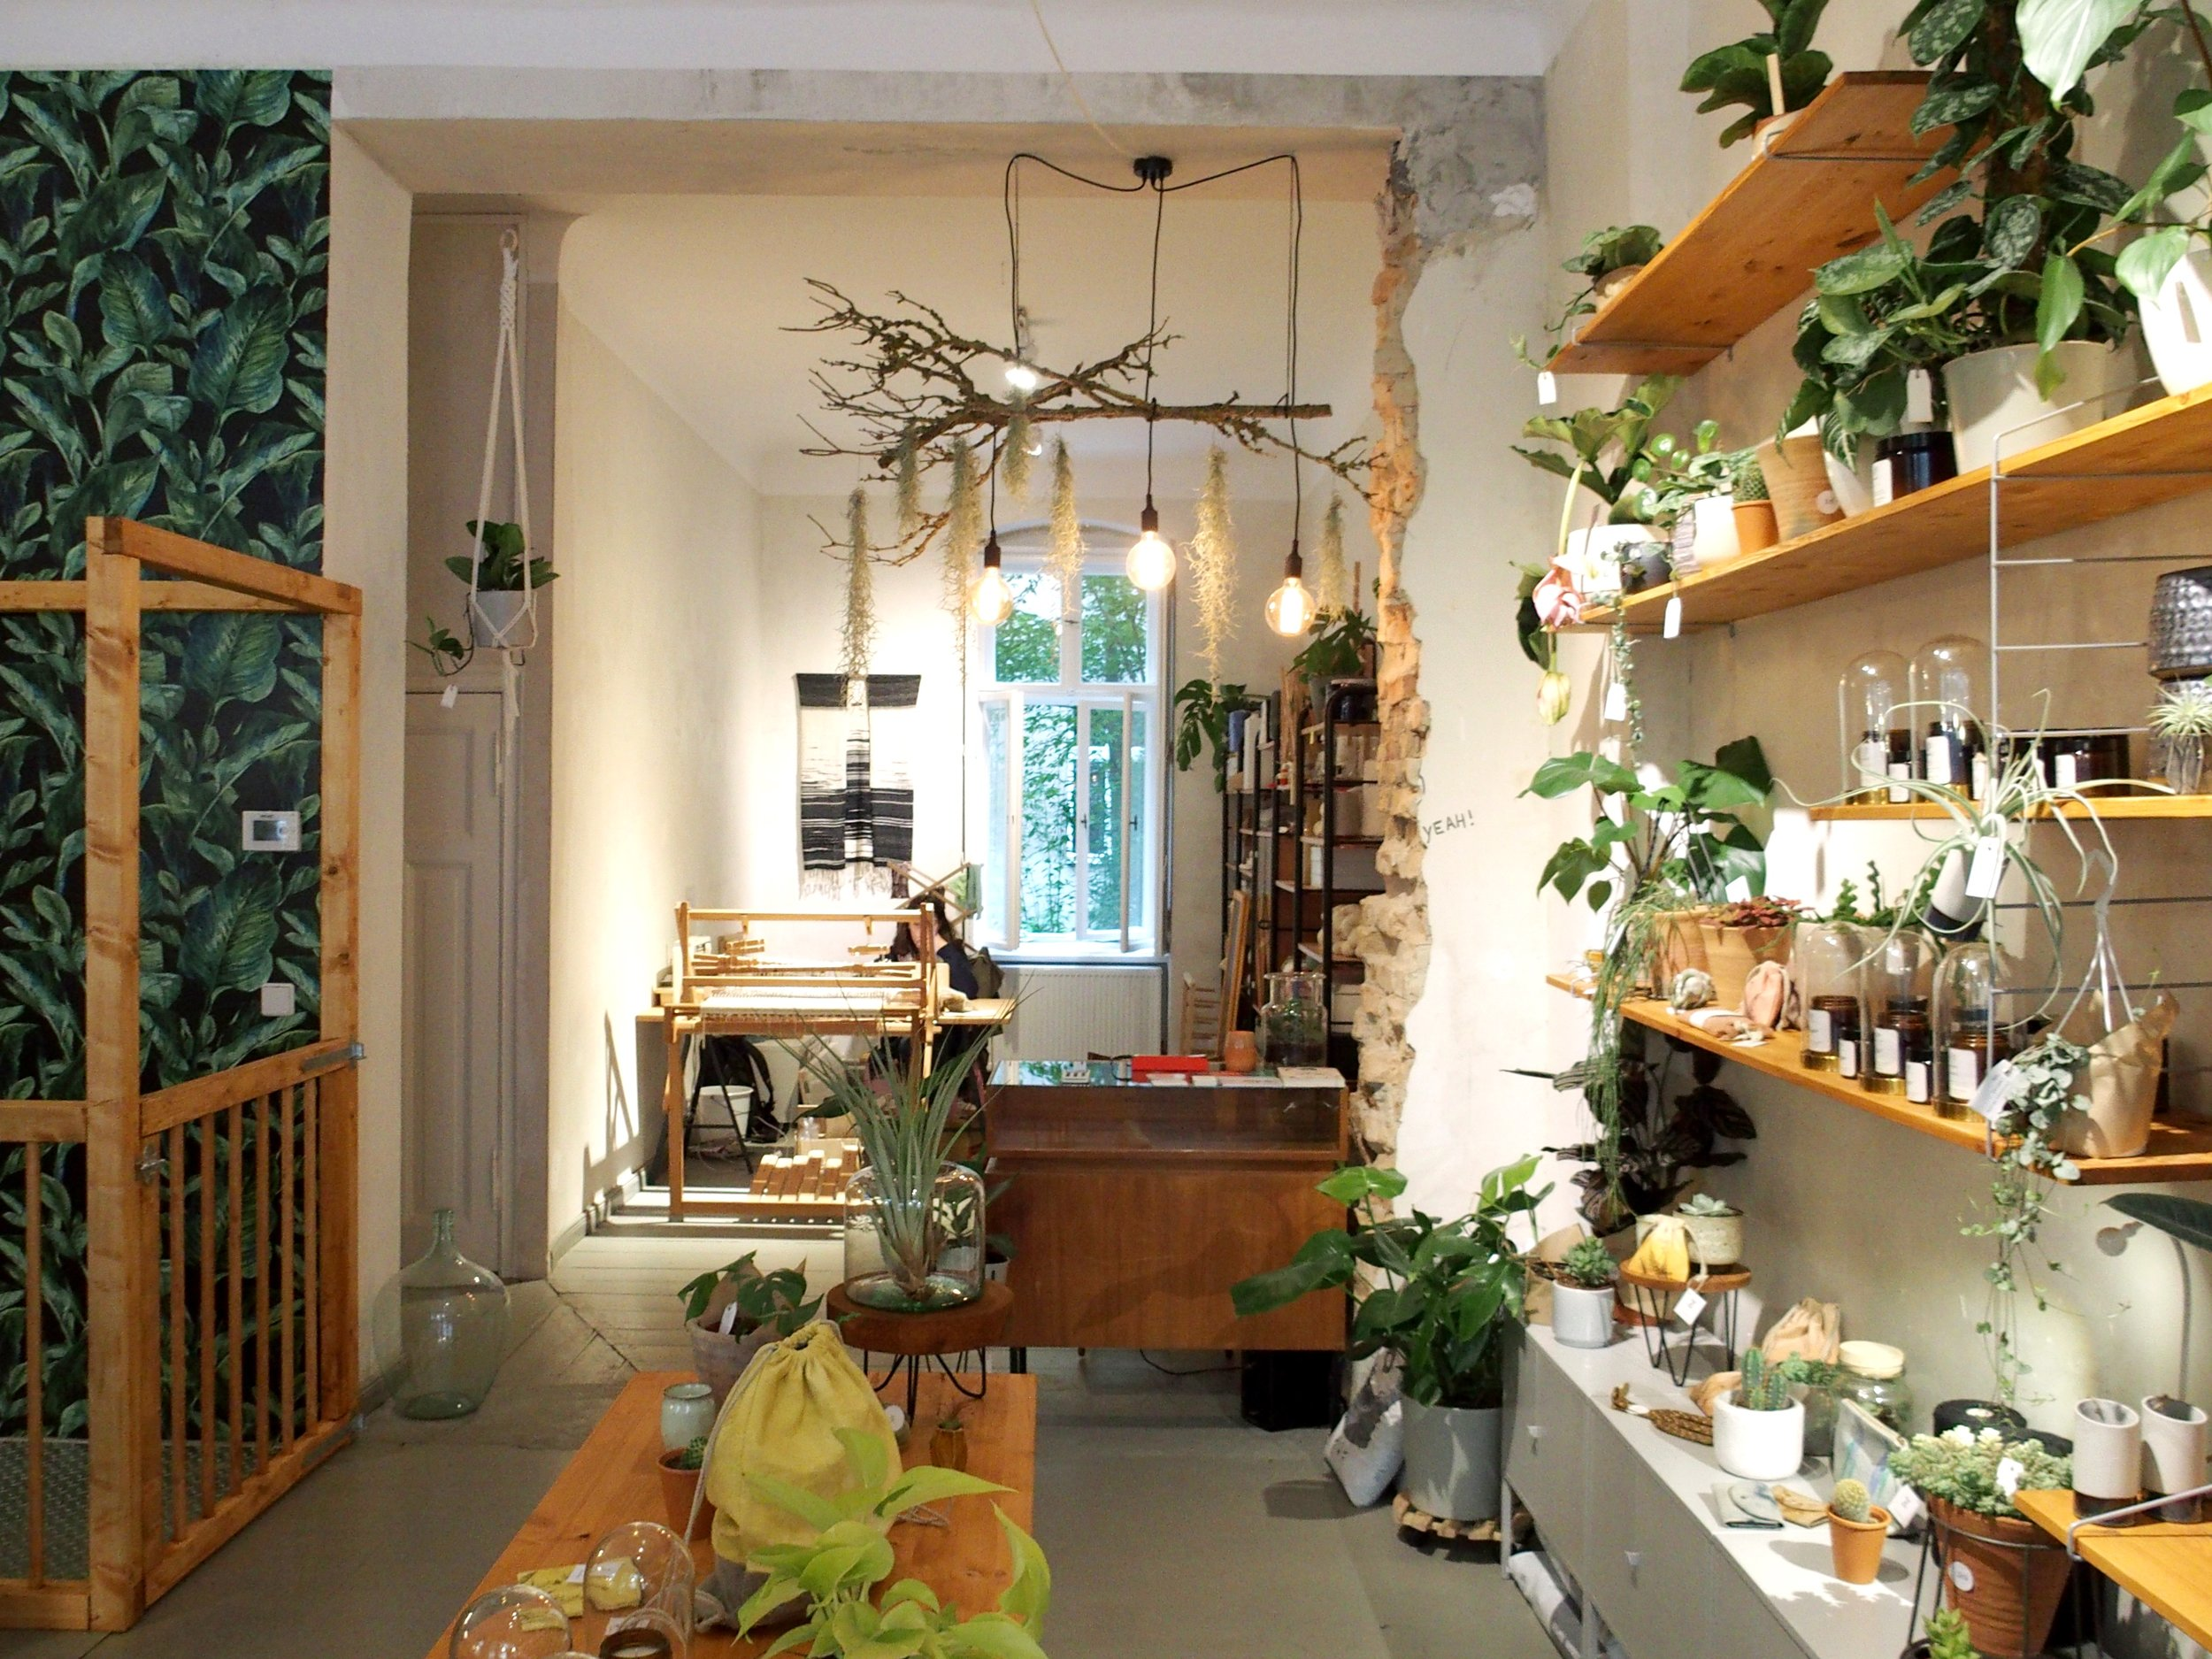 Her Atelier & plant-based shop in Neukölln, Berlin